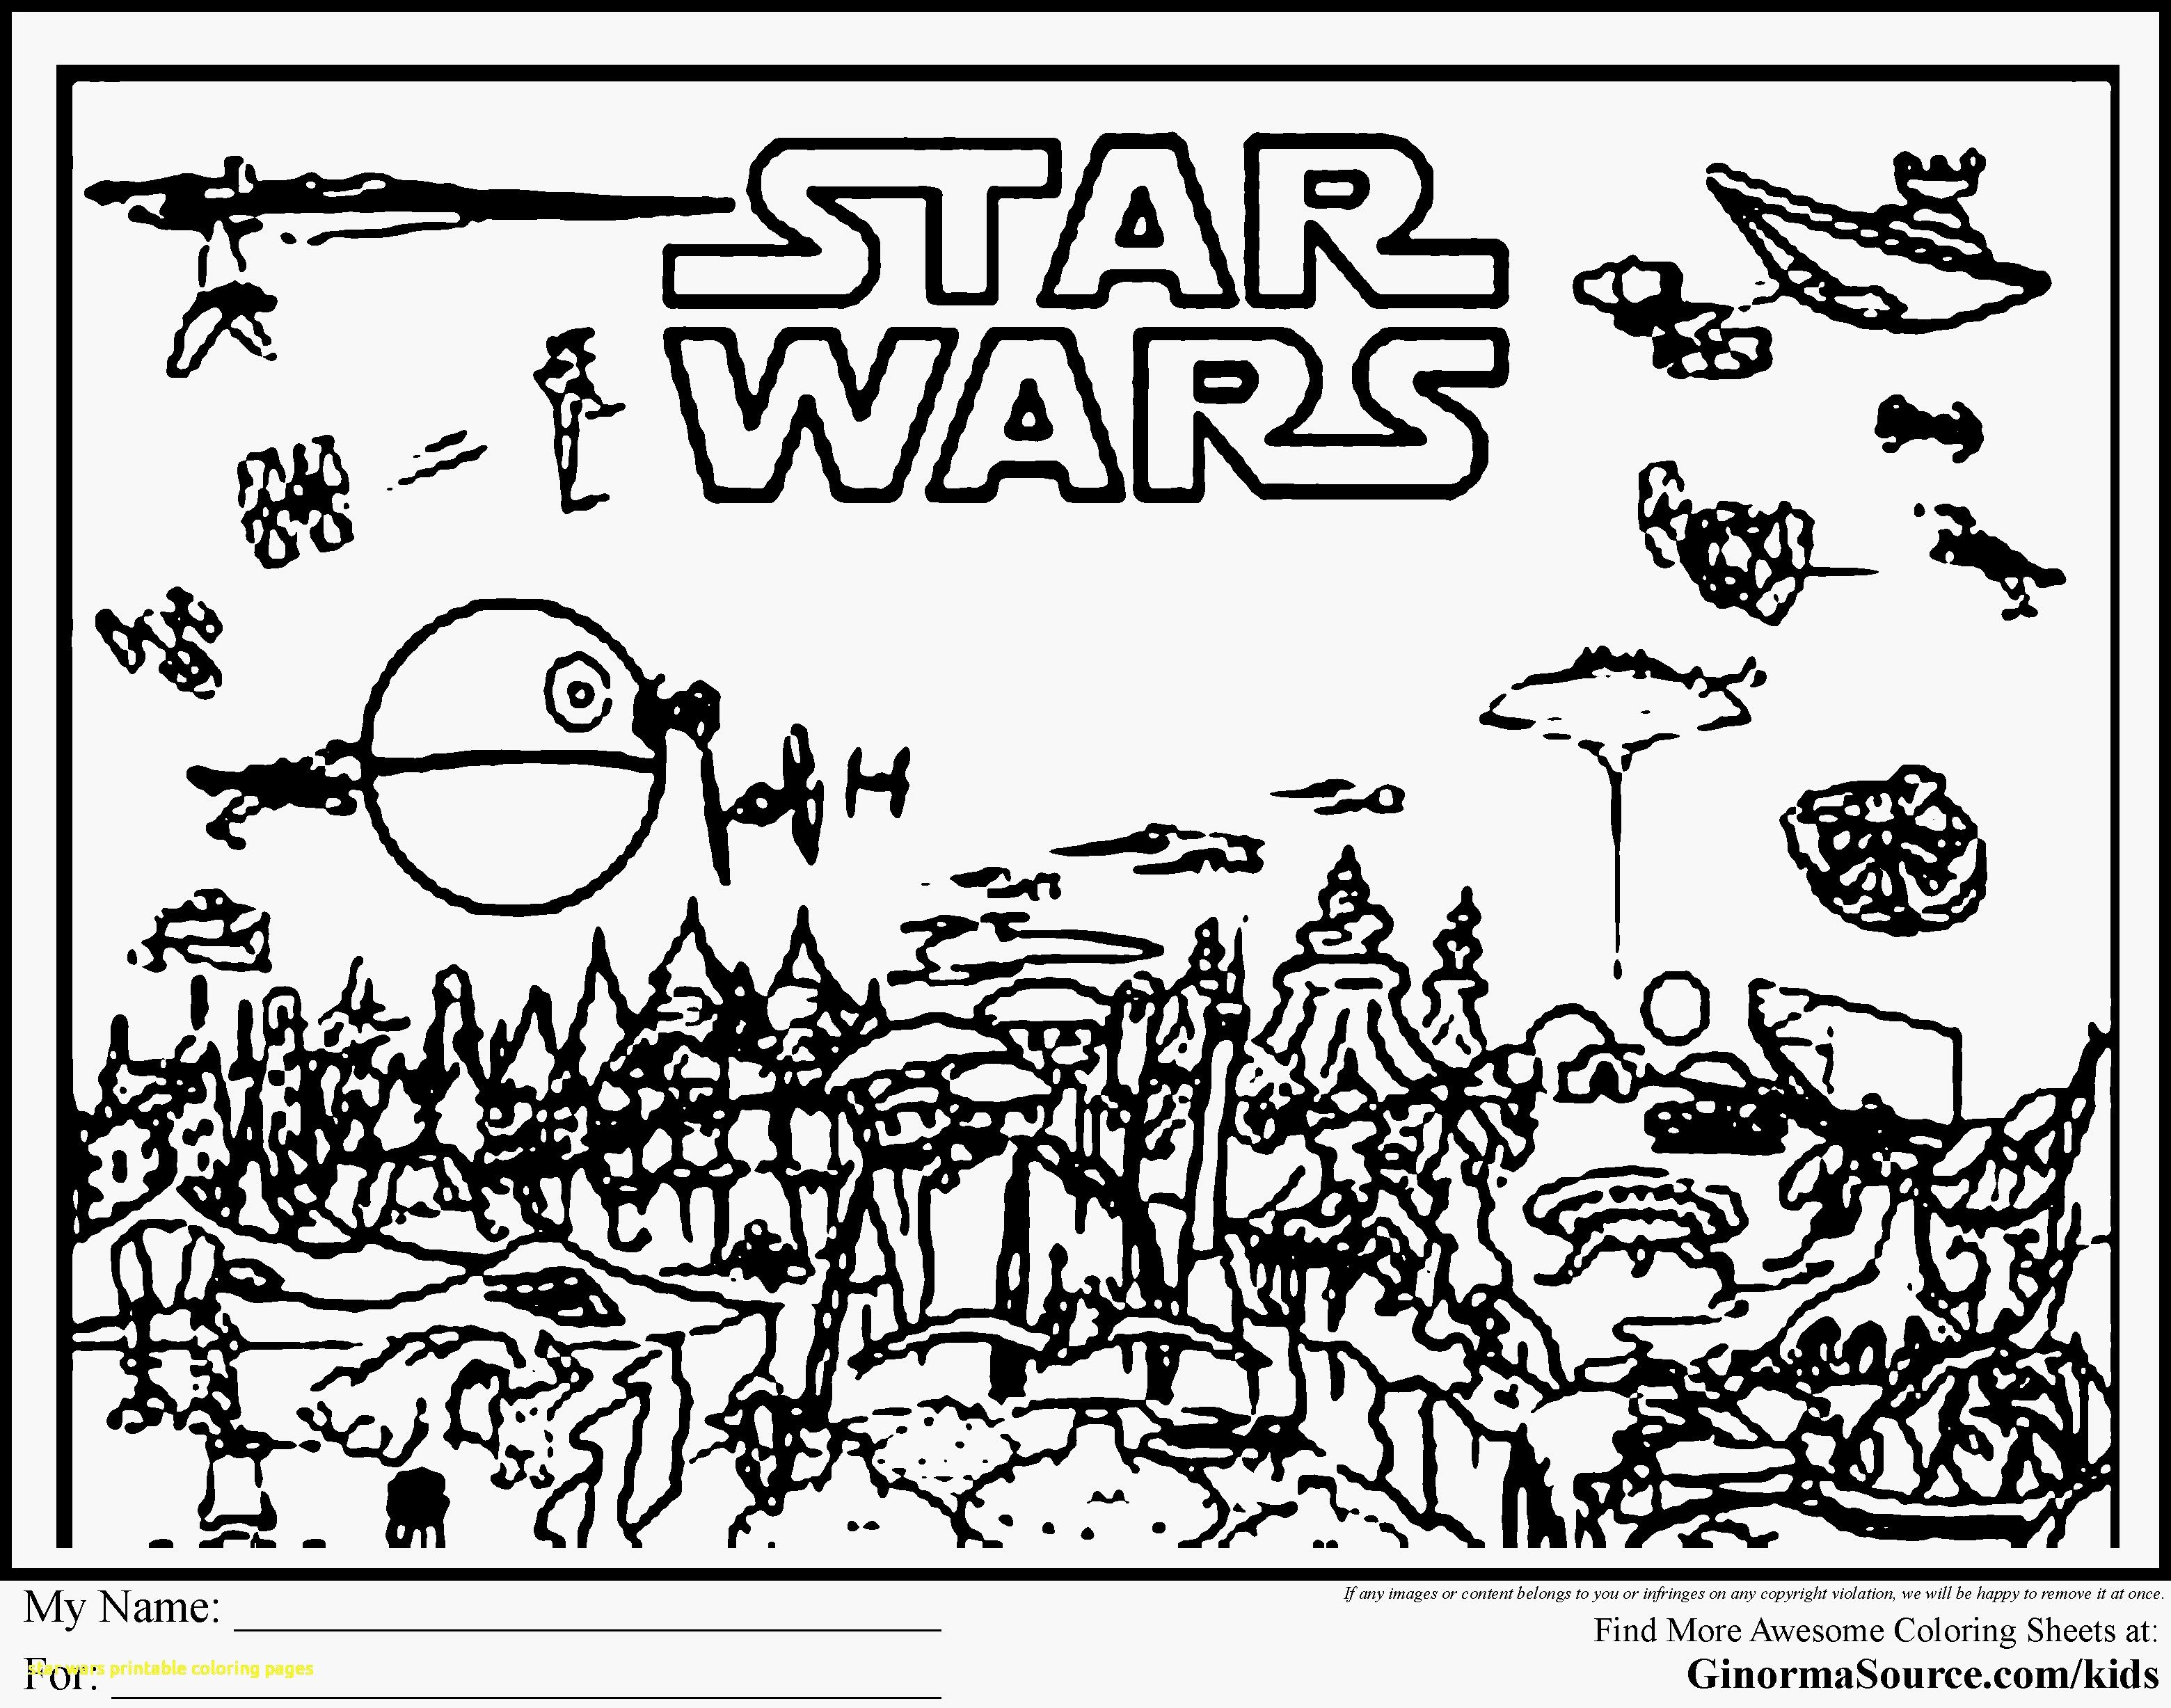 star wars coloring pages free Collection-Legos Star Wars Coloring Pages Angry Birds Star Wars Coloring Pages Yoda Star Wars Coloring Pages 2-d